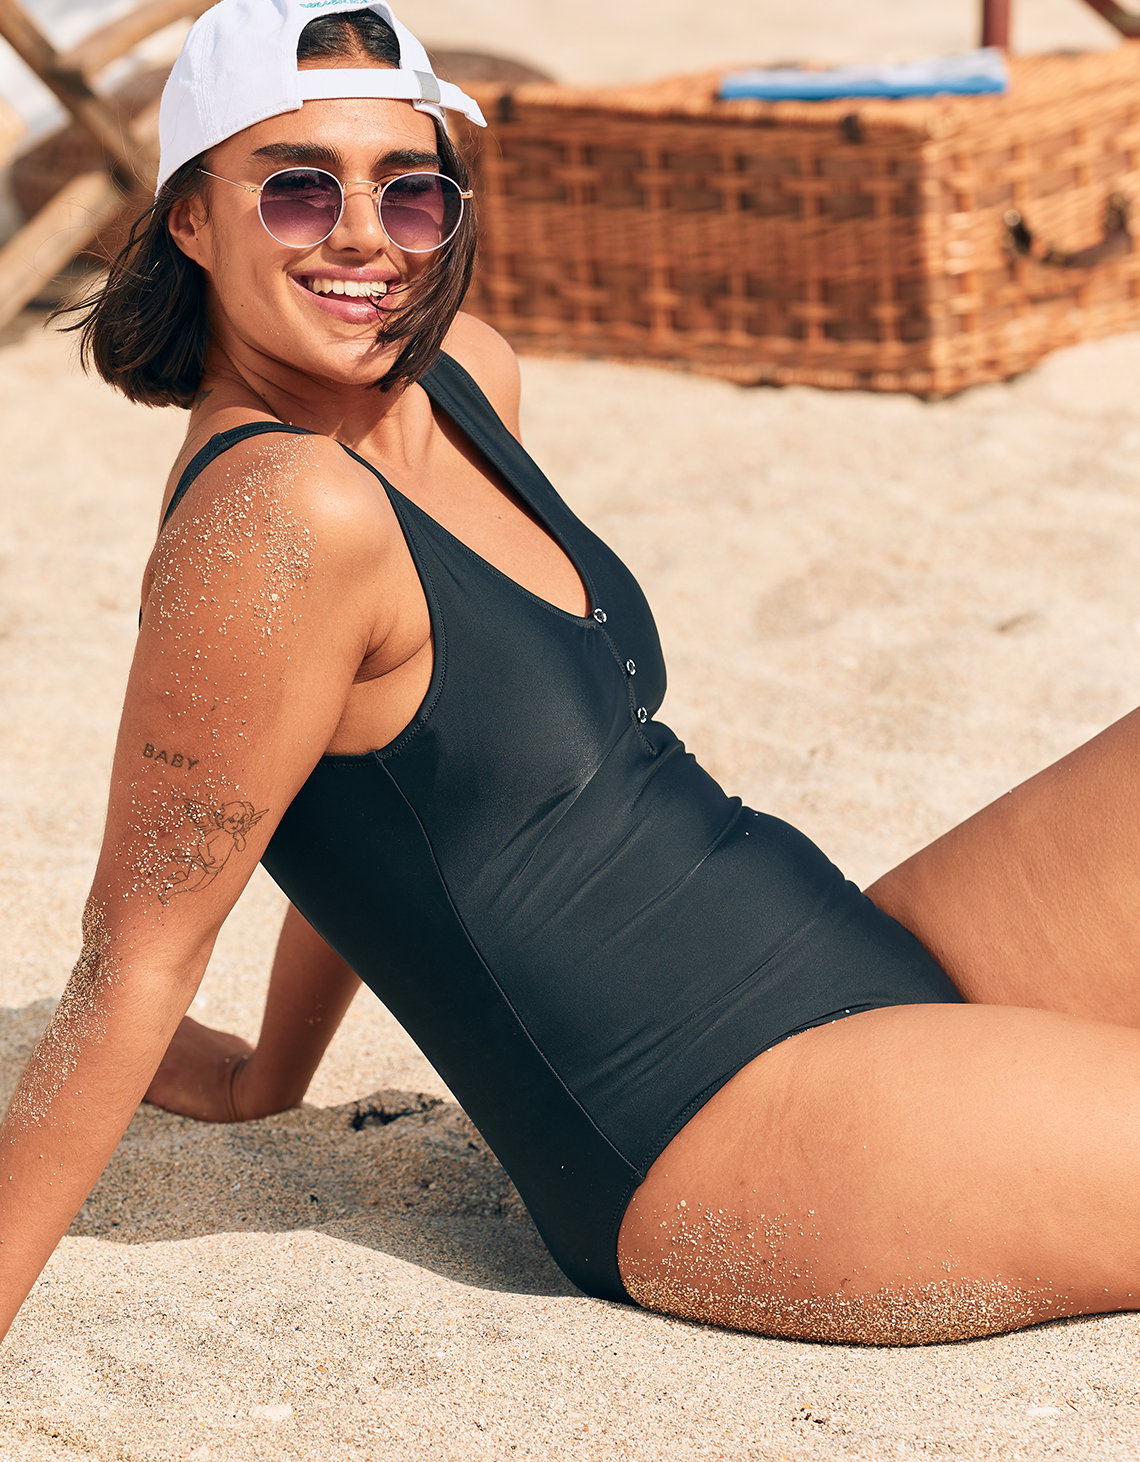 f228060d12 Aerie One Piece Swimsuit. Placeholder image. Product Image